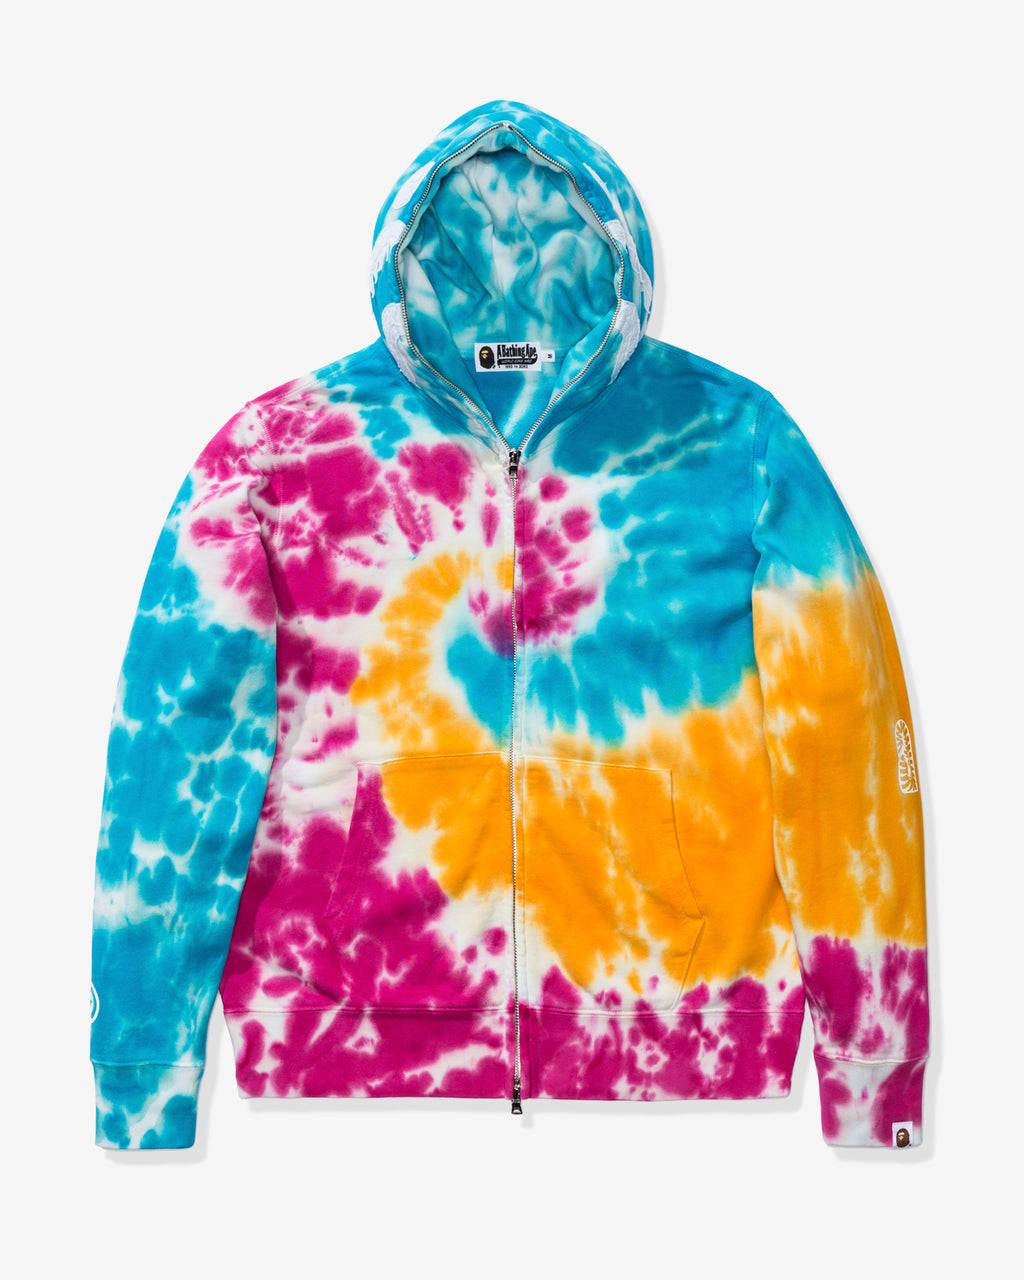 BAPE TIE DYE SHARK WIDE FULL ZIP HOODIE - MULTI